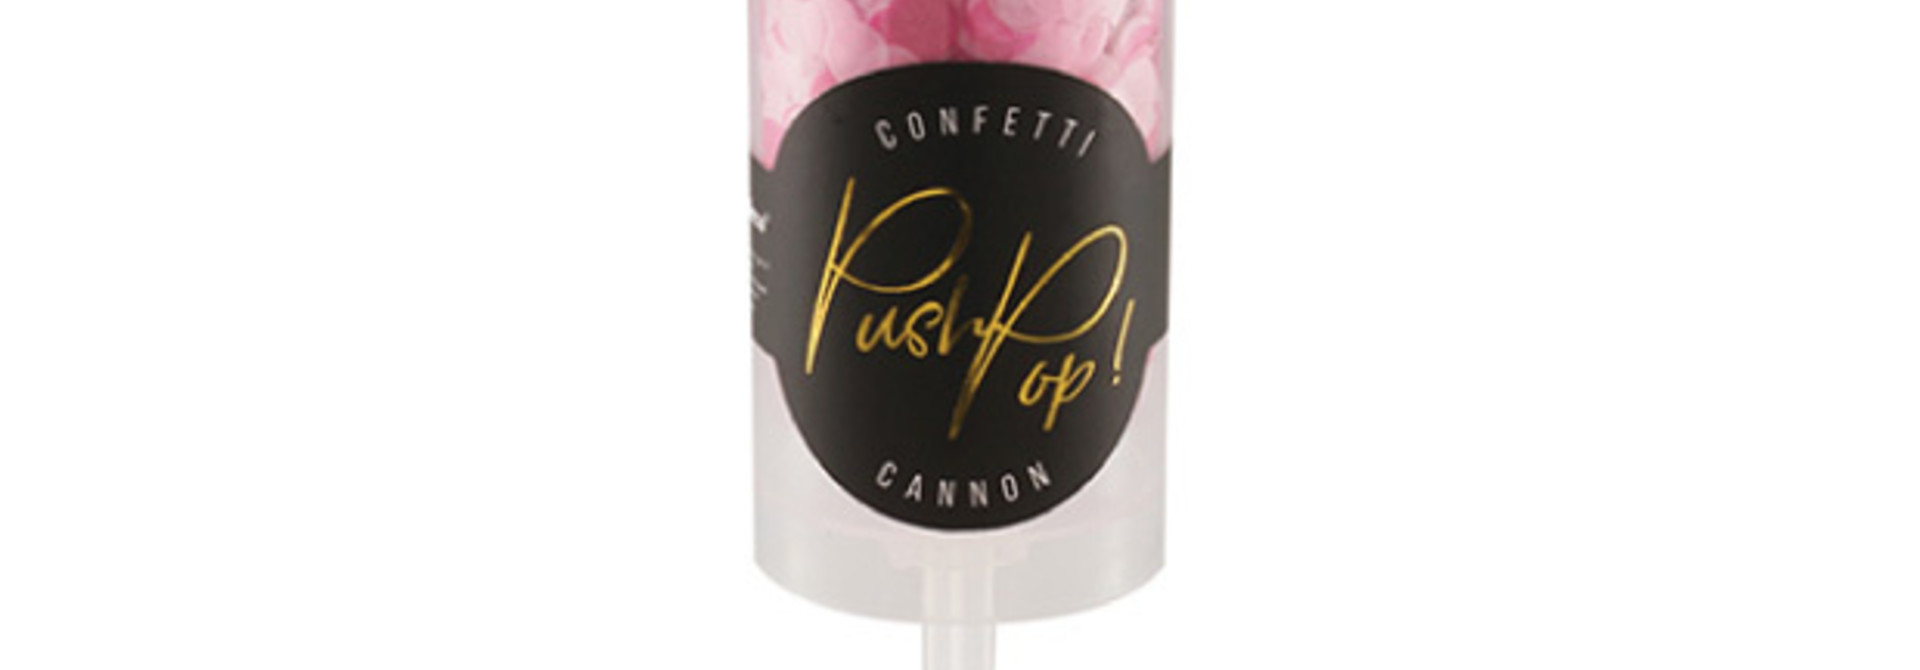 Confetti push pop roze